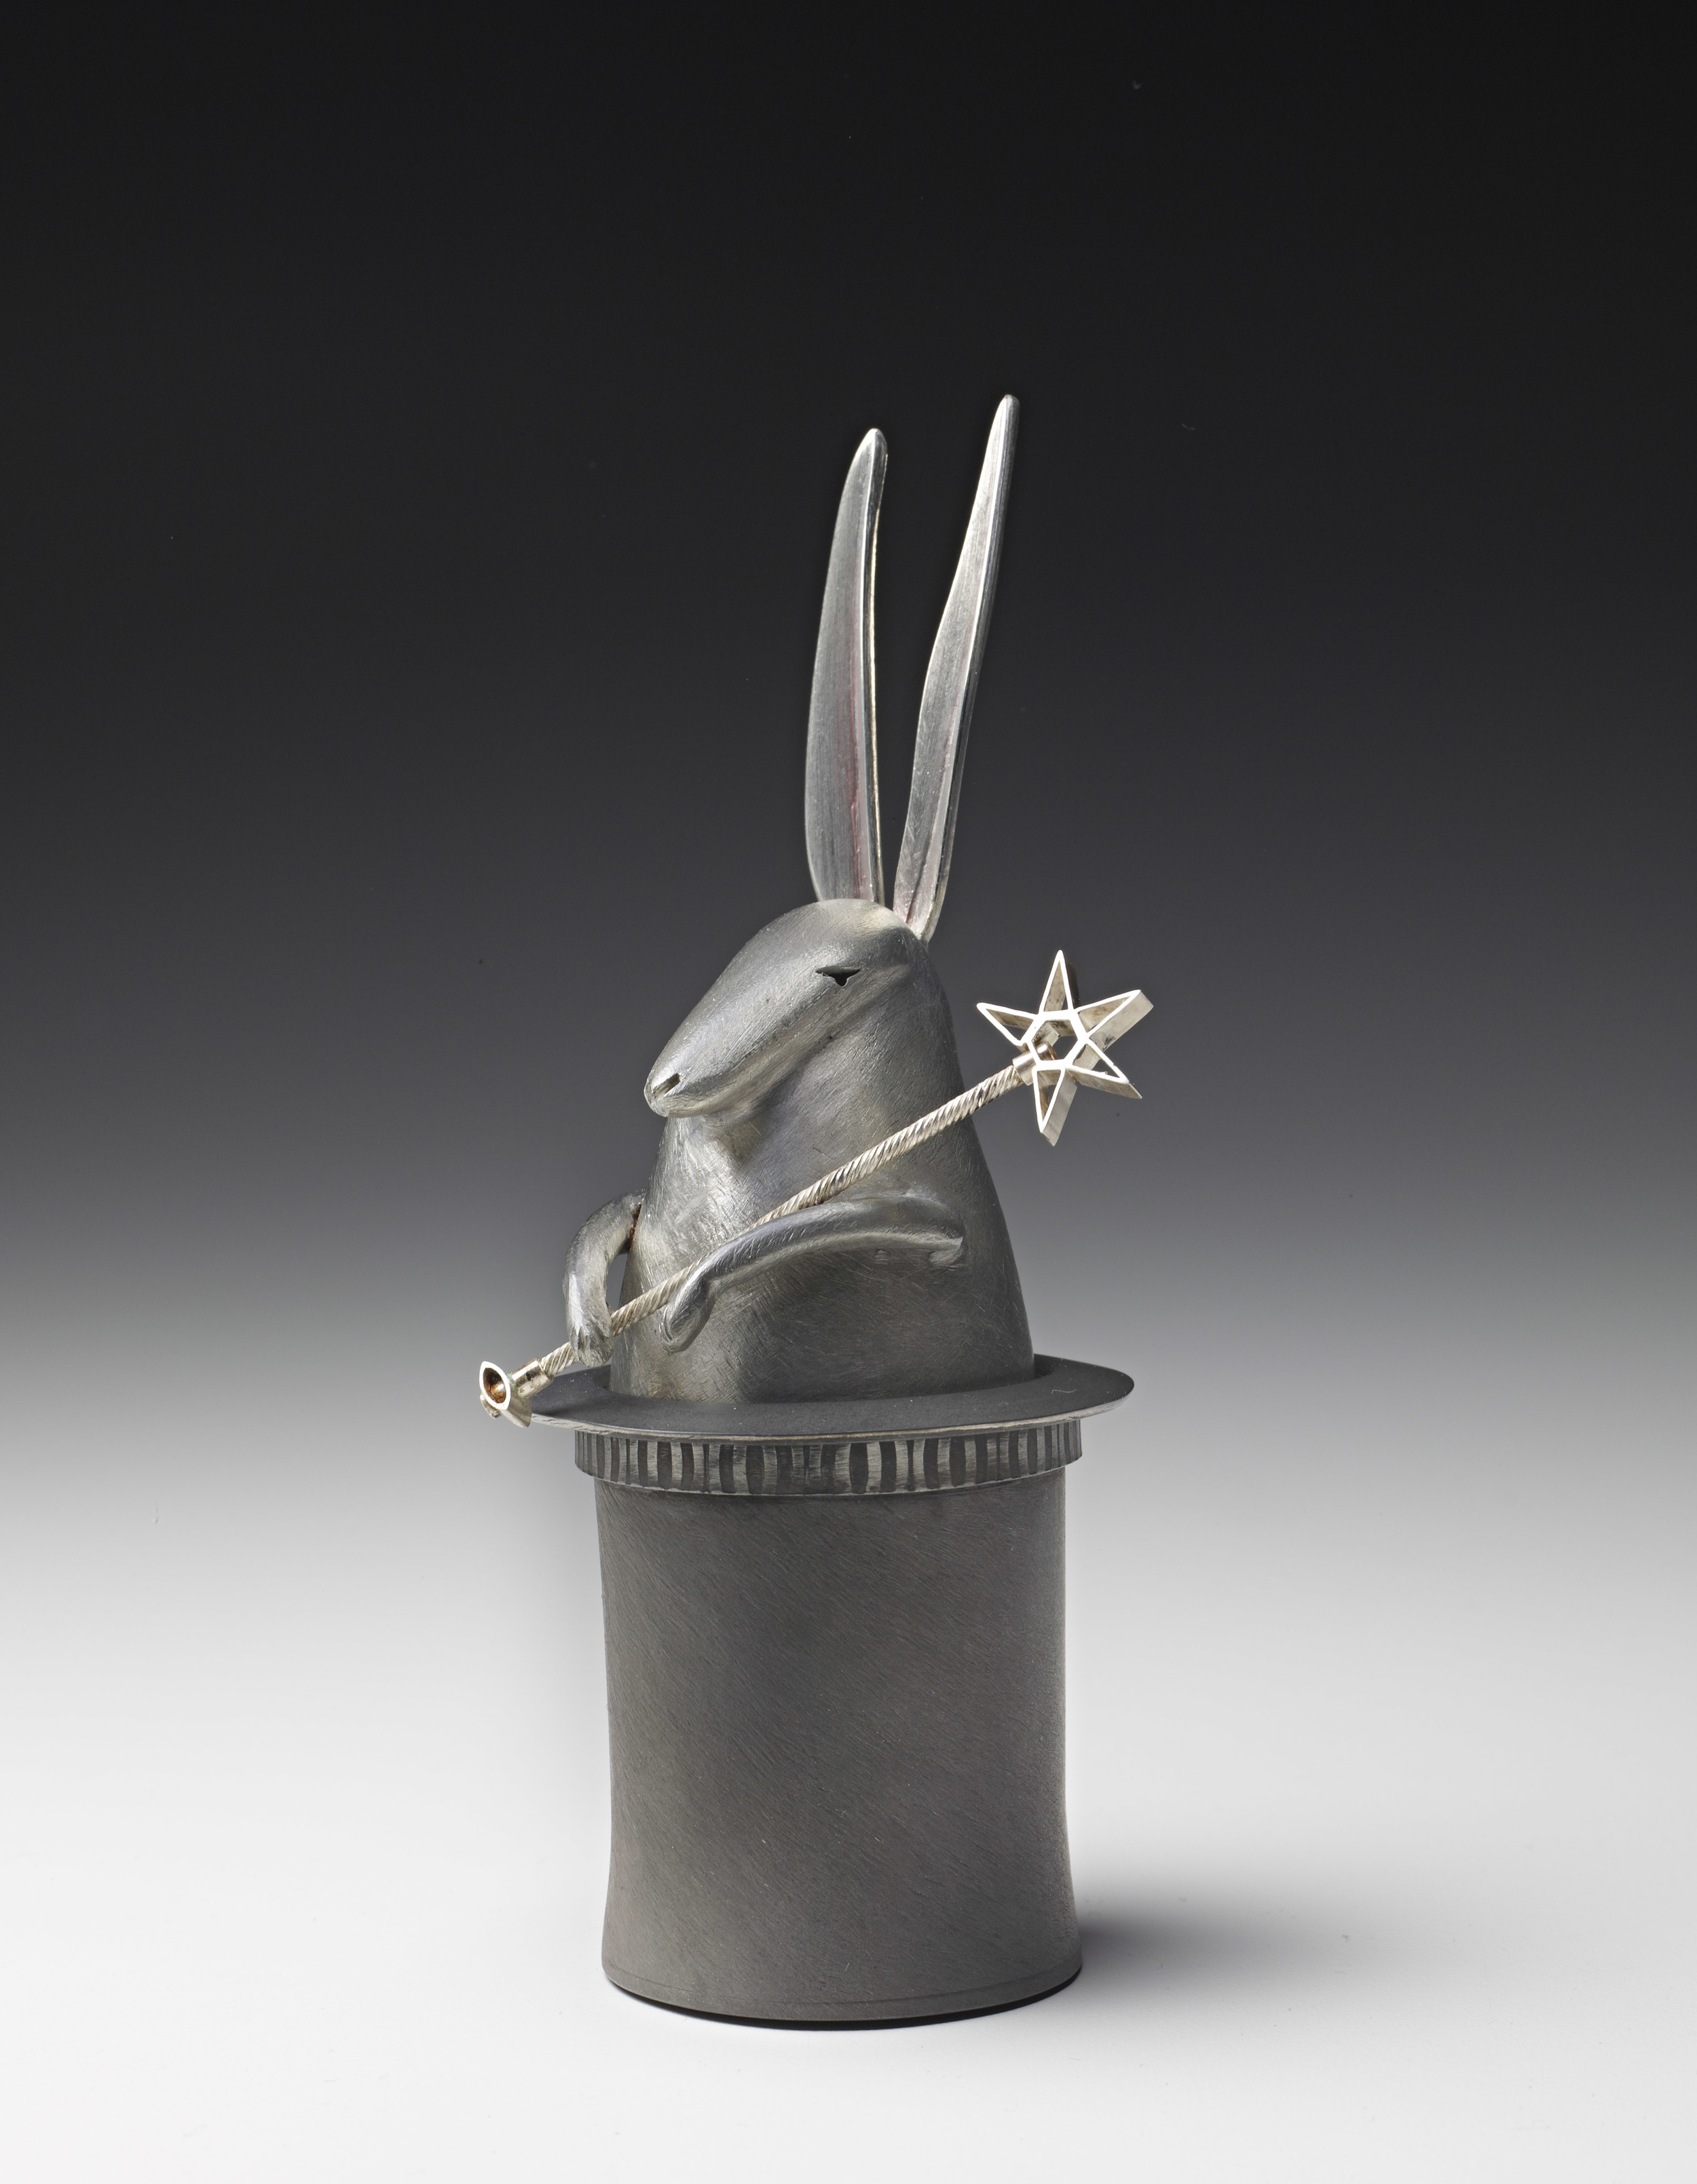 Rabbit in the Hat (salt and pepper shaker)